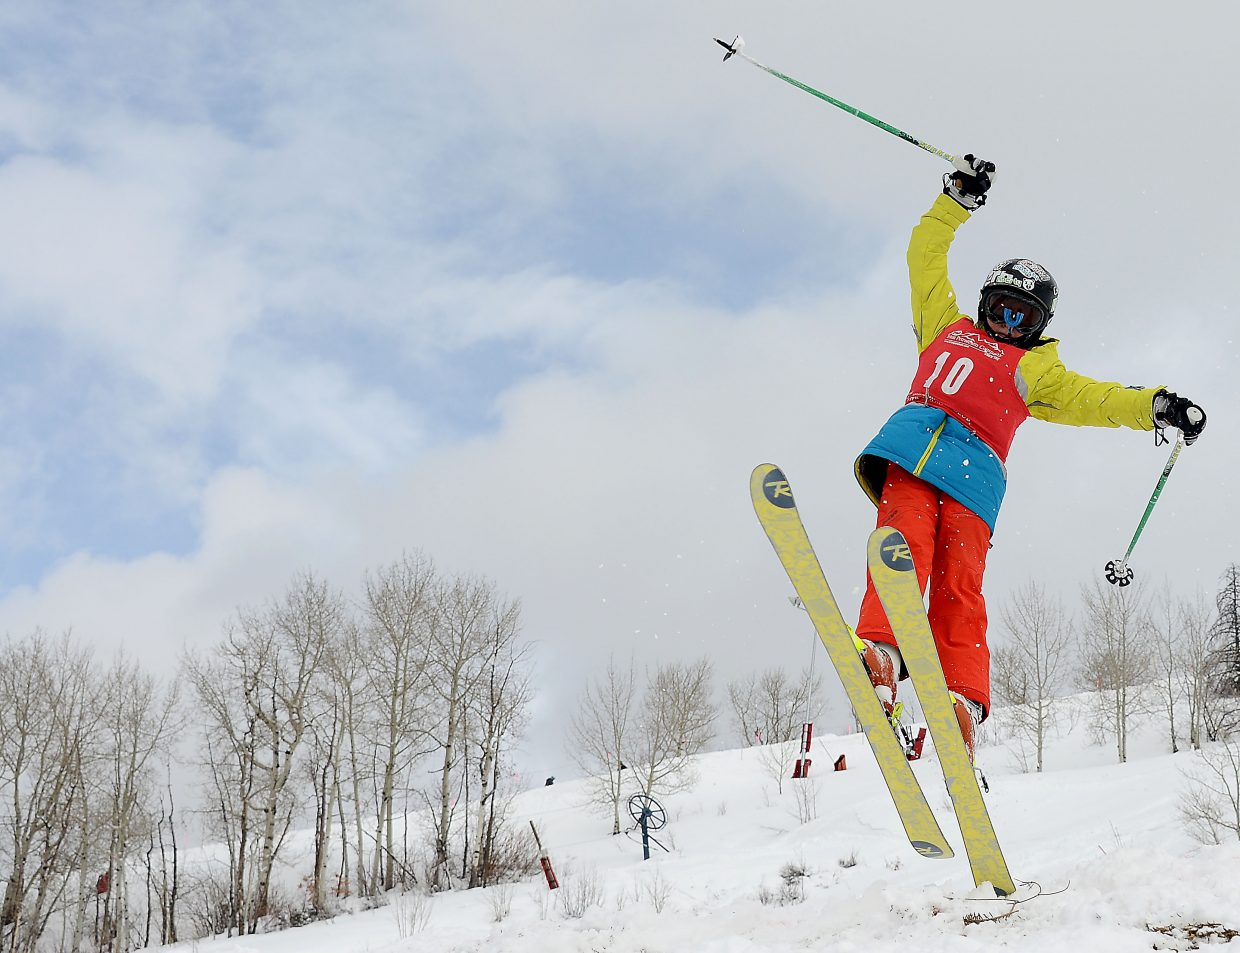 Sam Chasin of Winter Park skis Saturday in a moguls event at Steamboat Ski Area.